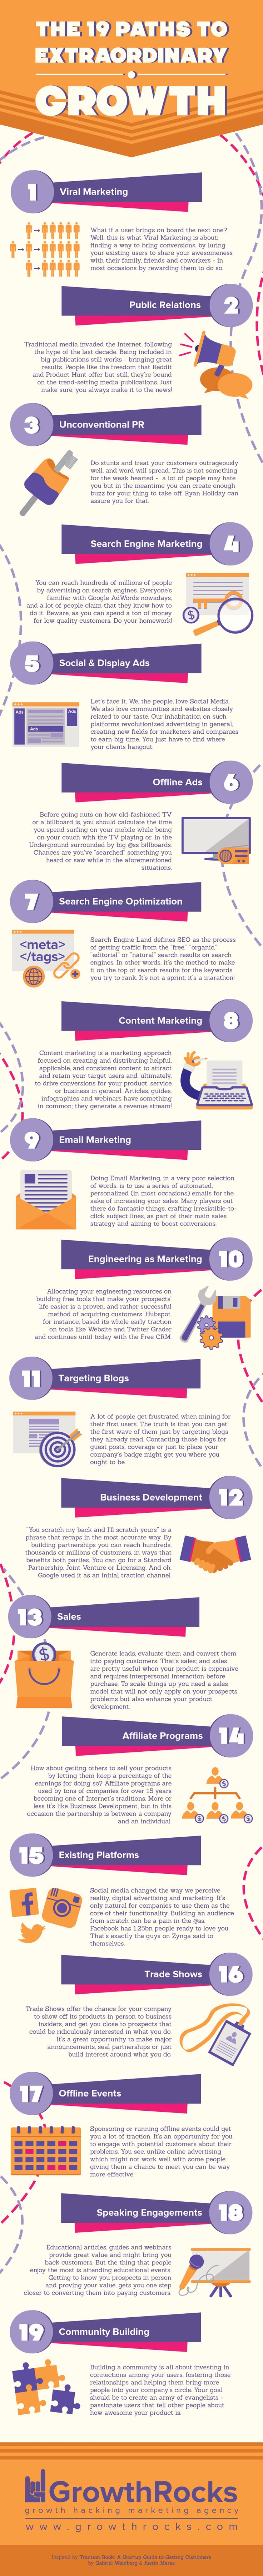 Infographic: The 19 Paths To Extraordinary Growth